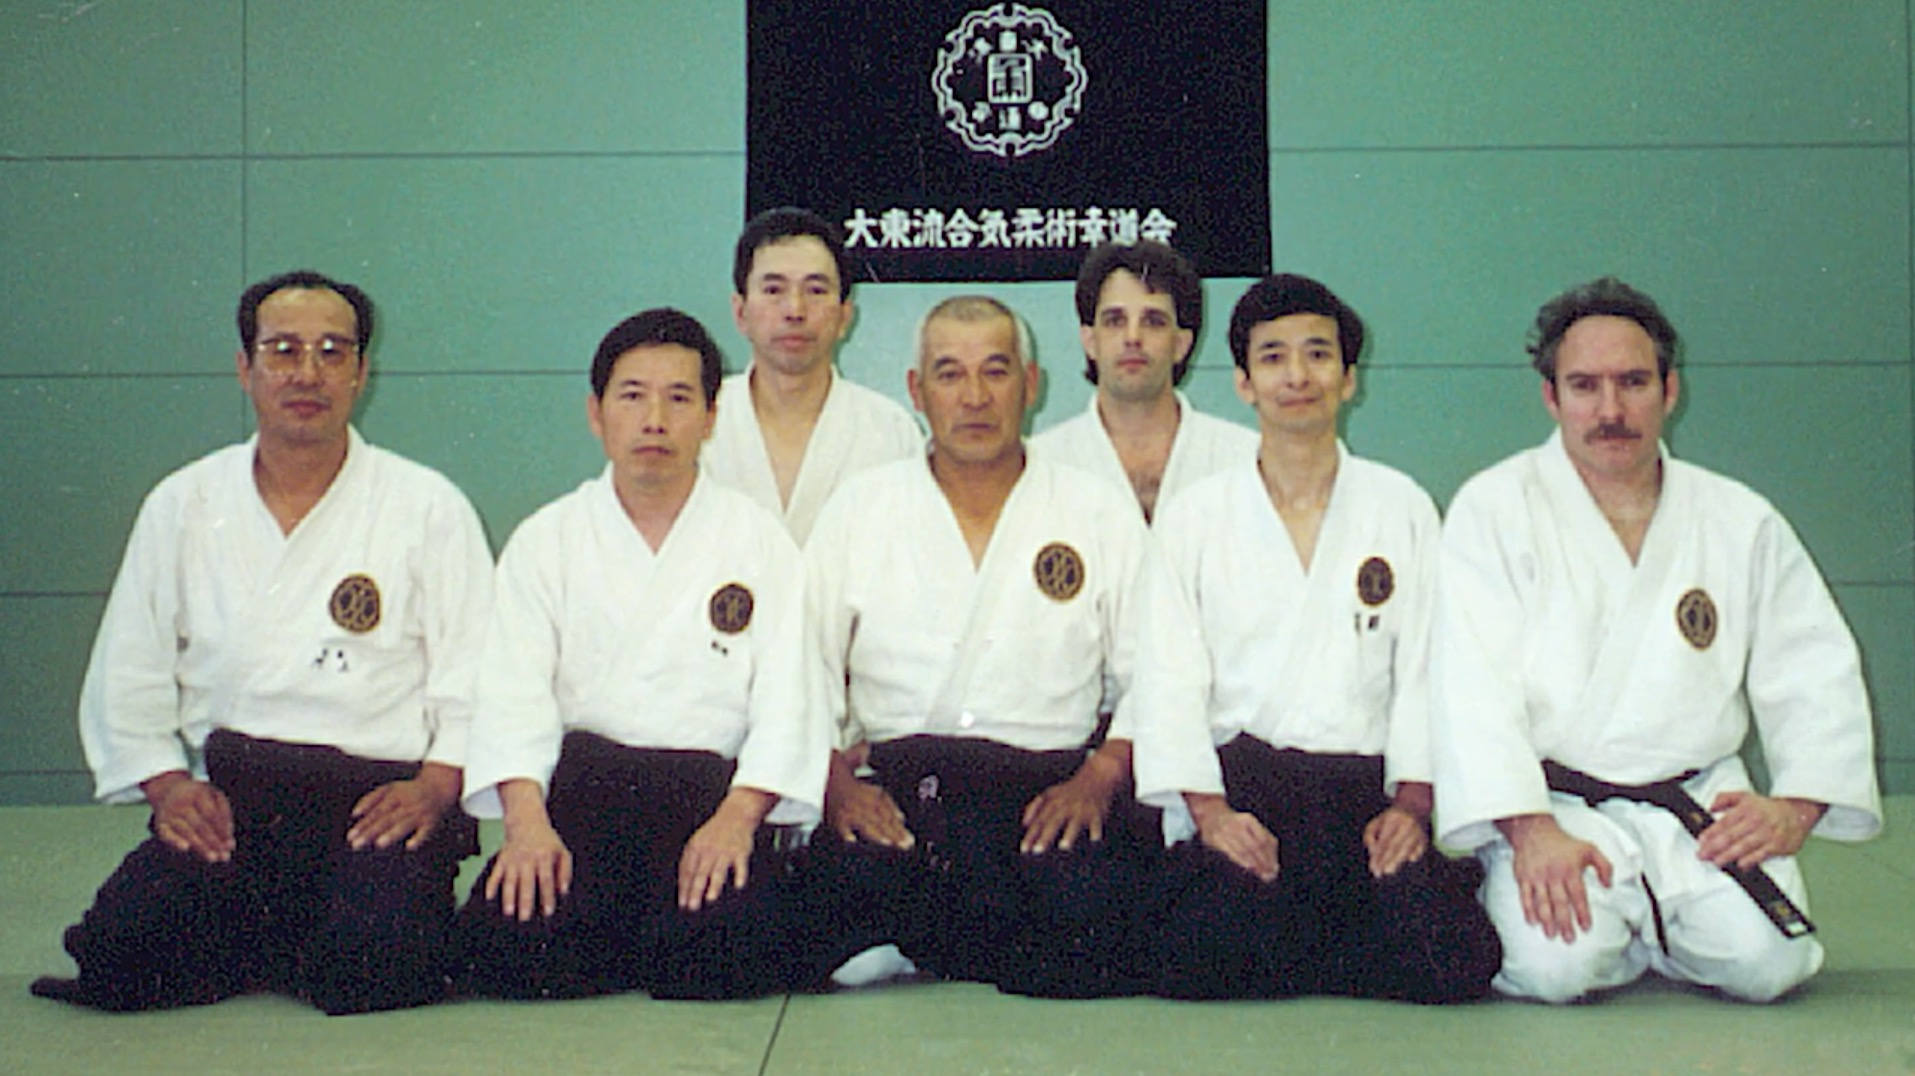 Kiyama Shihan and Goldberg Sensei training at the Hombu Dojo in Kitami, Japan.